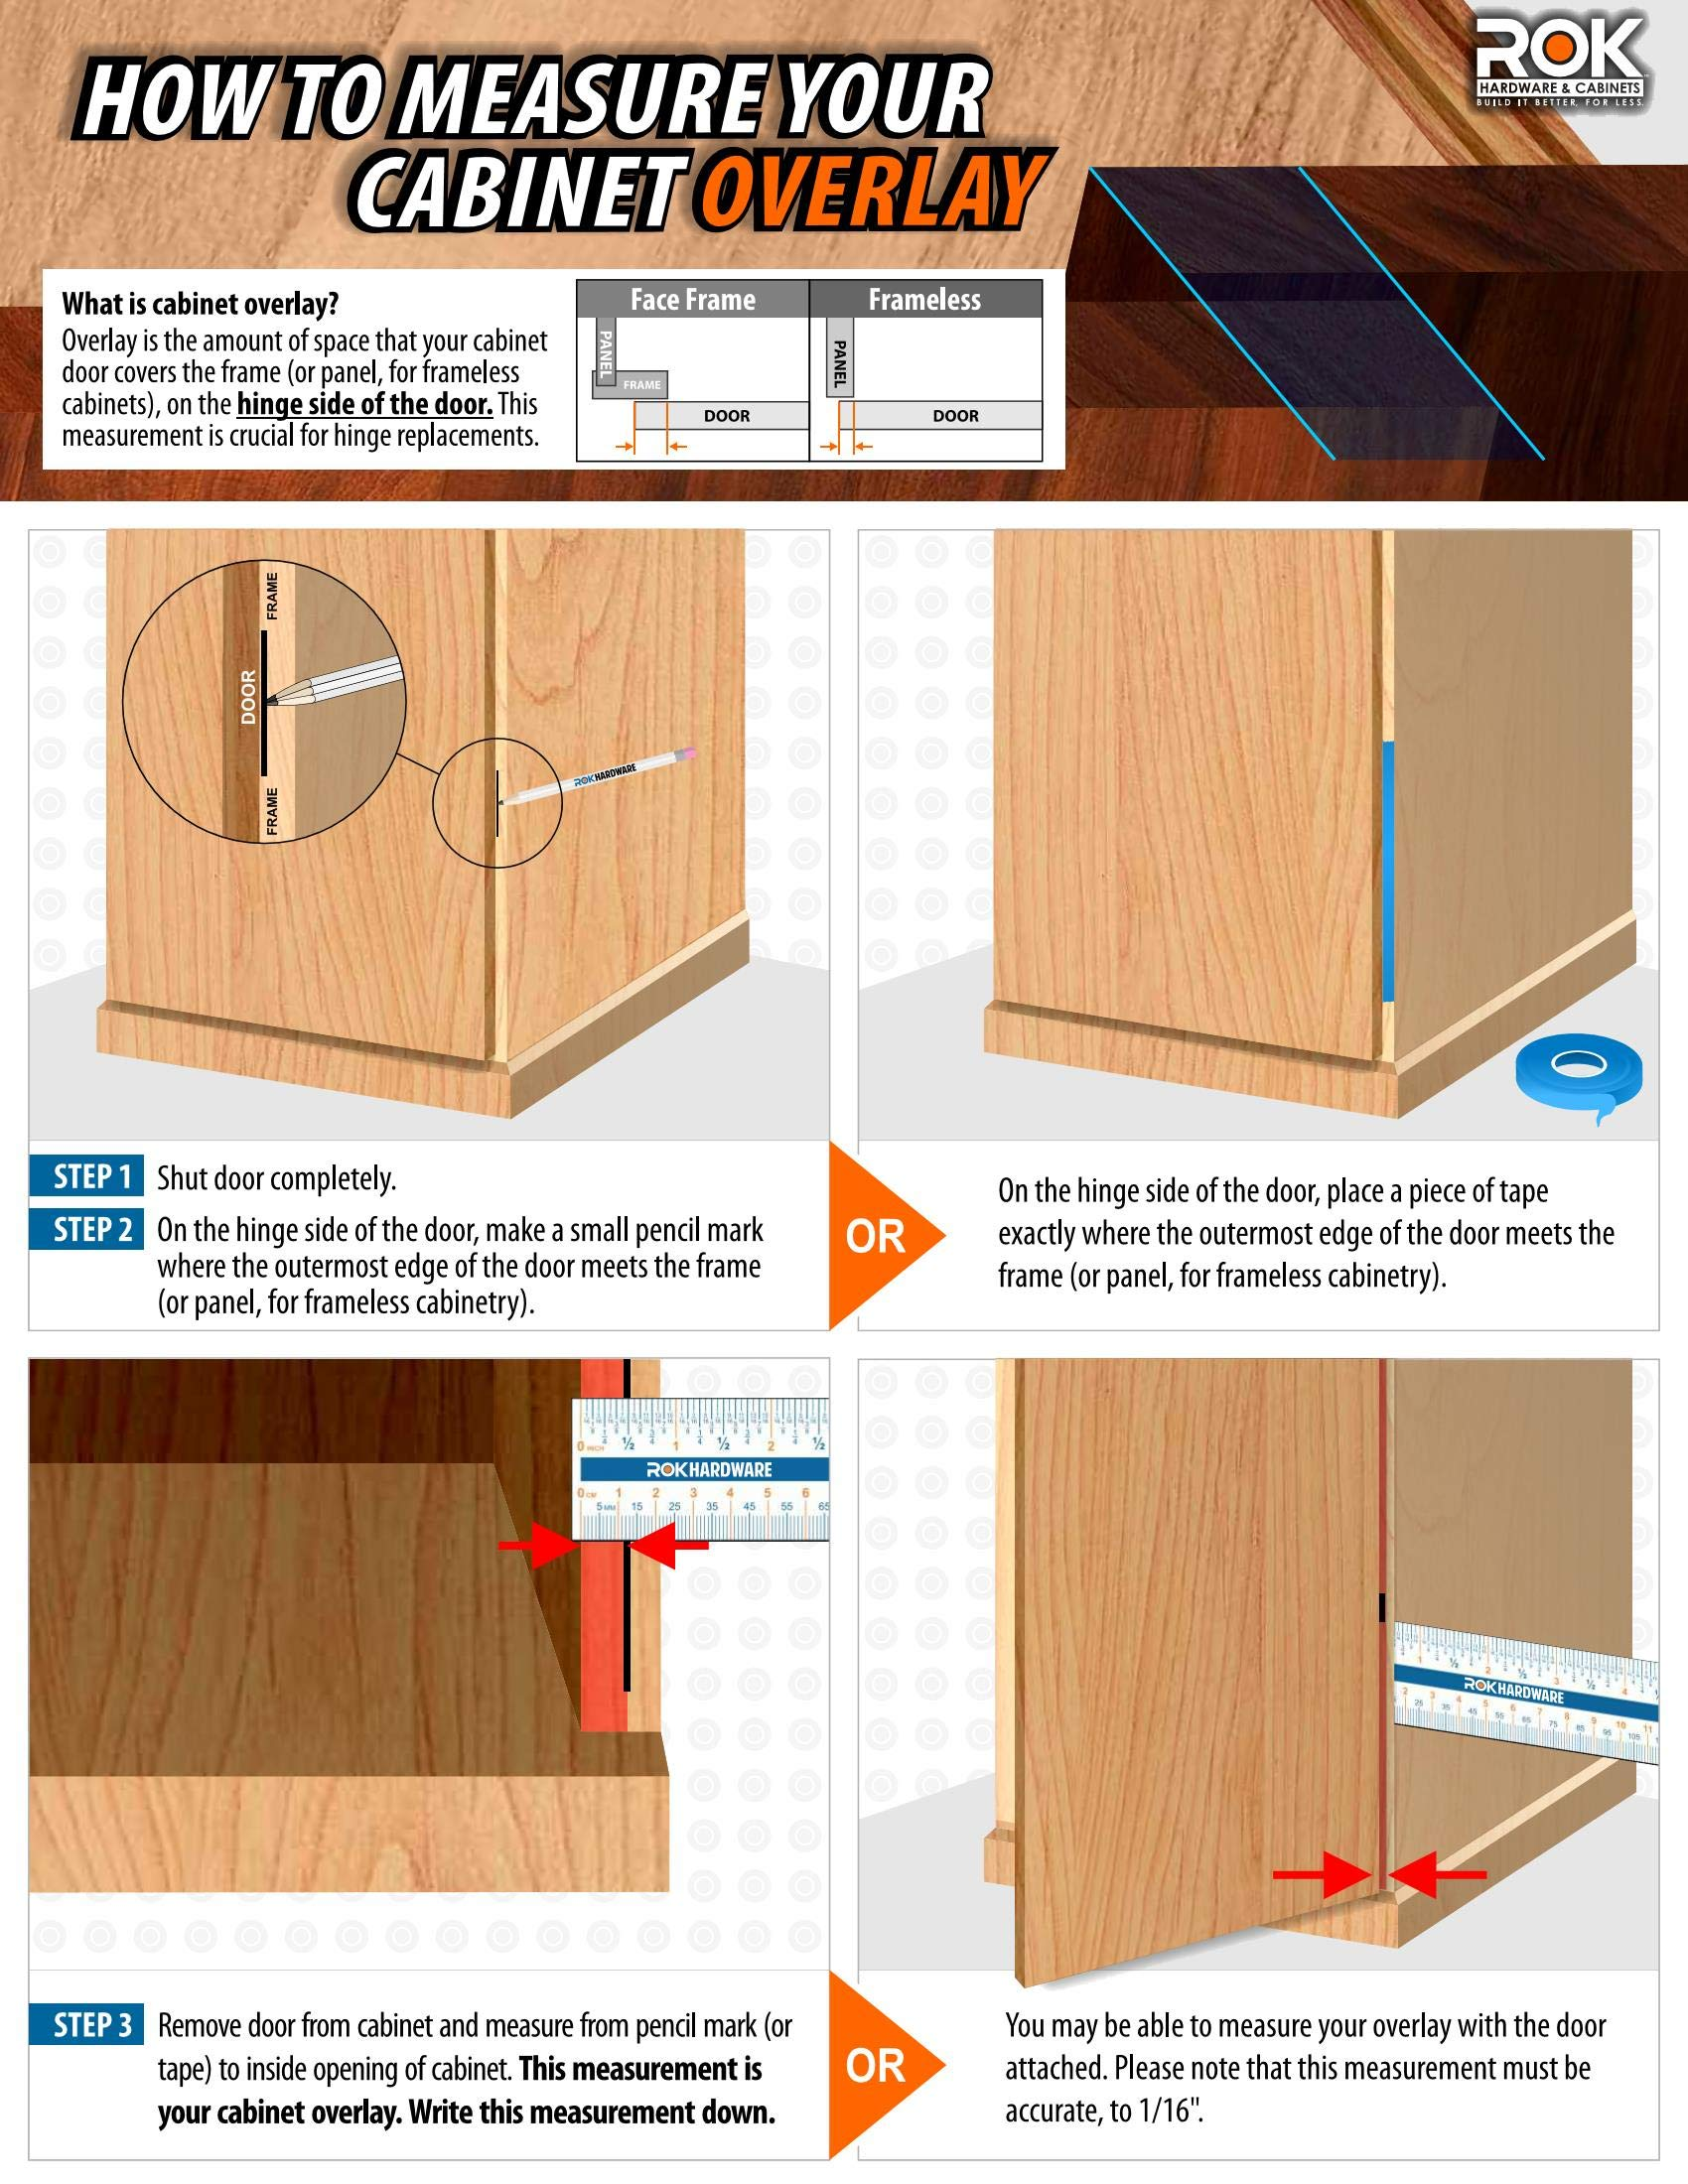 25 Pack Rok Hardware Grass TEC 864 108 Degree 3/4'' Overlay 3 Level Soft Close Screw On Compact Cabinet Hinge 04432A-15 3-Way Adjustment 45mm Boring Pattern by Rok (Image #6)